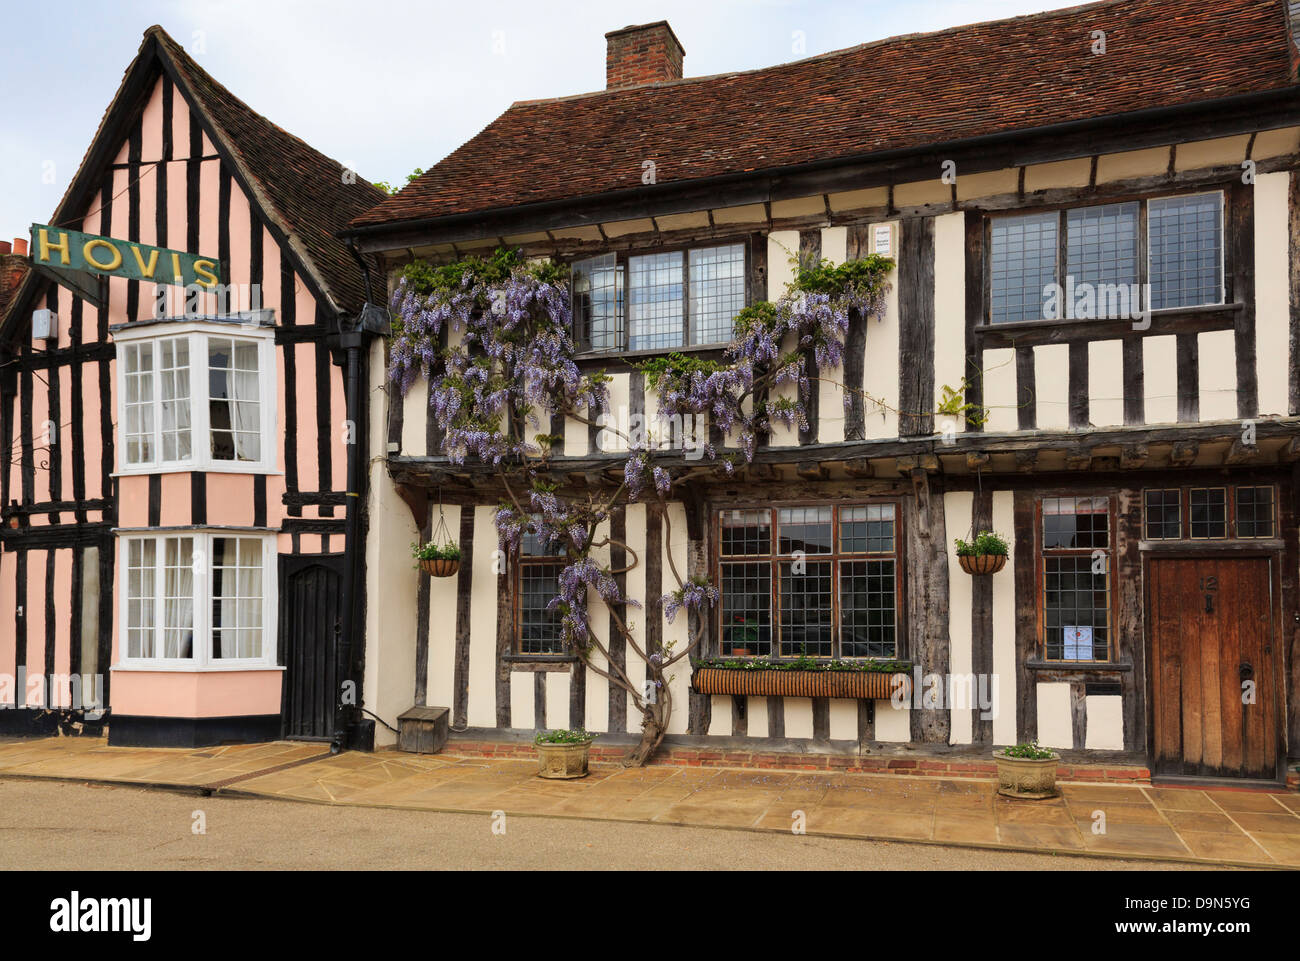 Wisteria floribunda growing on a timbered house front in historic village. Market Place, Lavenham, Suffolk, England, - Stock Image